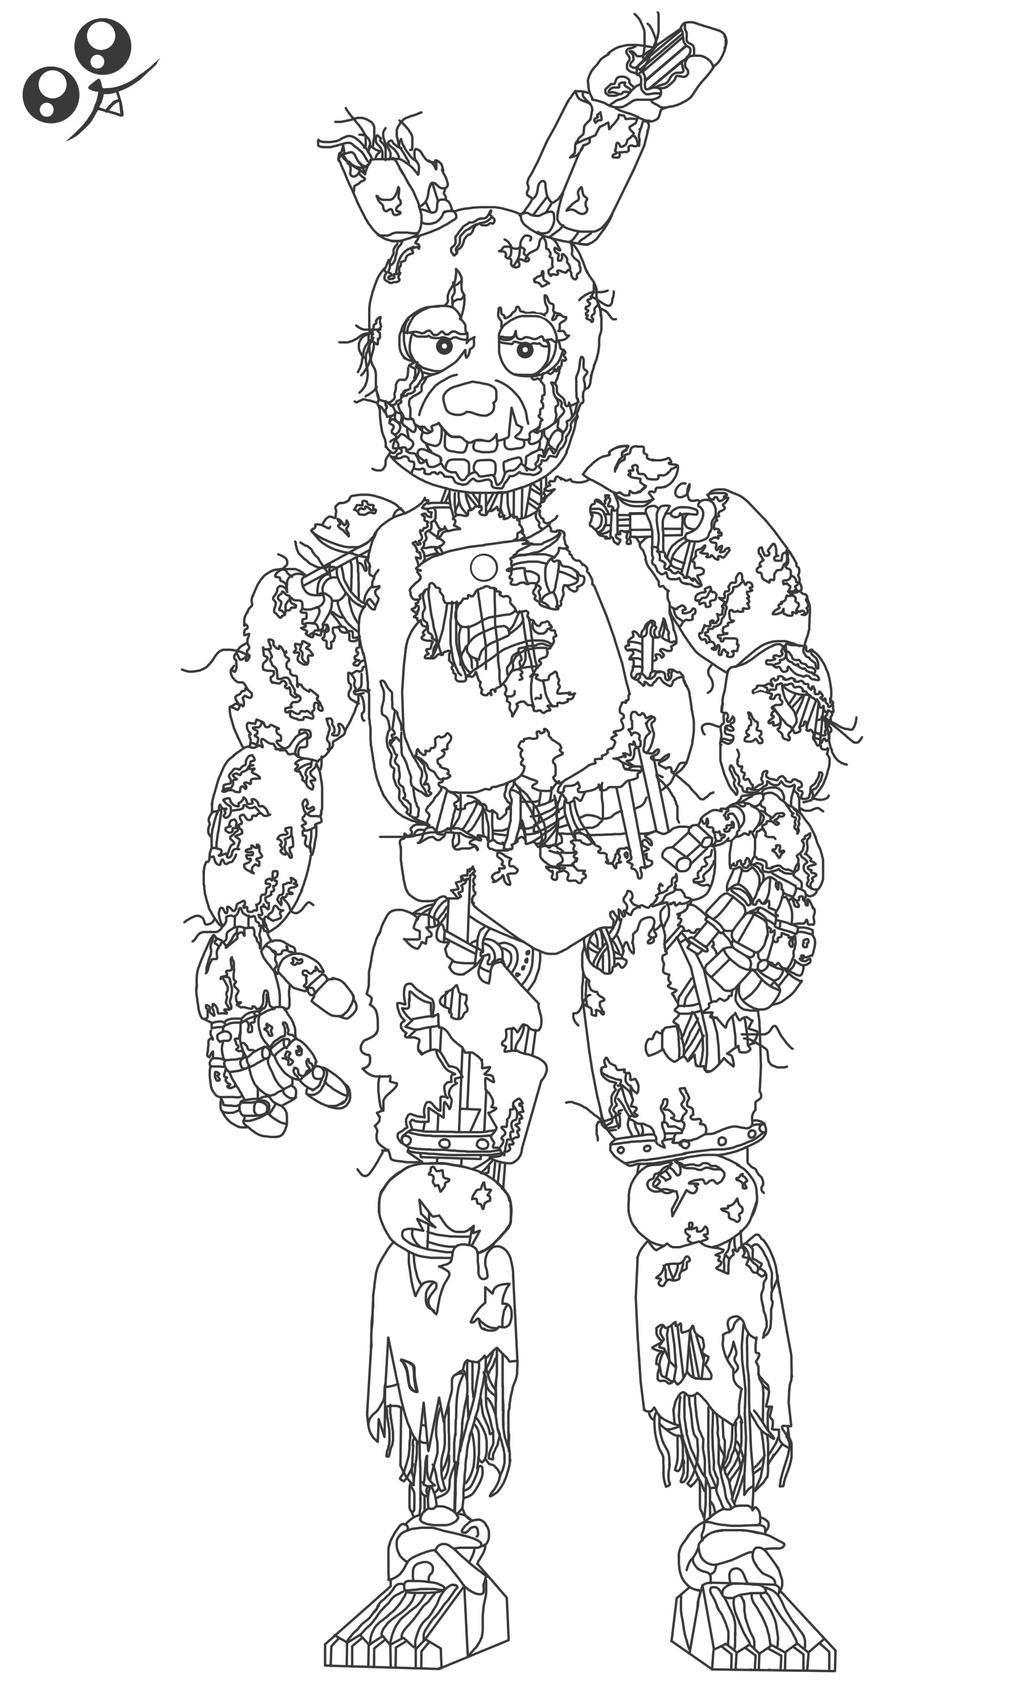 Spring Trap Fnaf Free Colouring